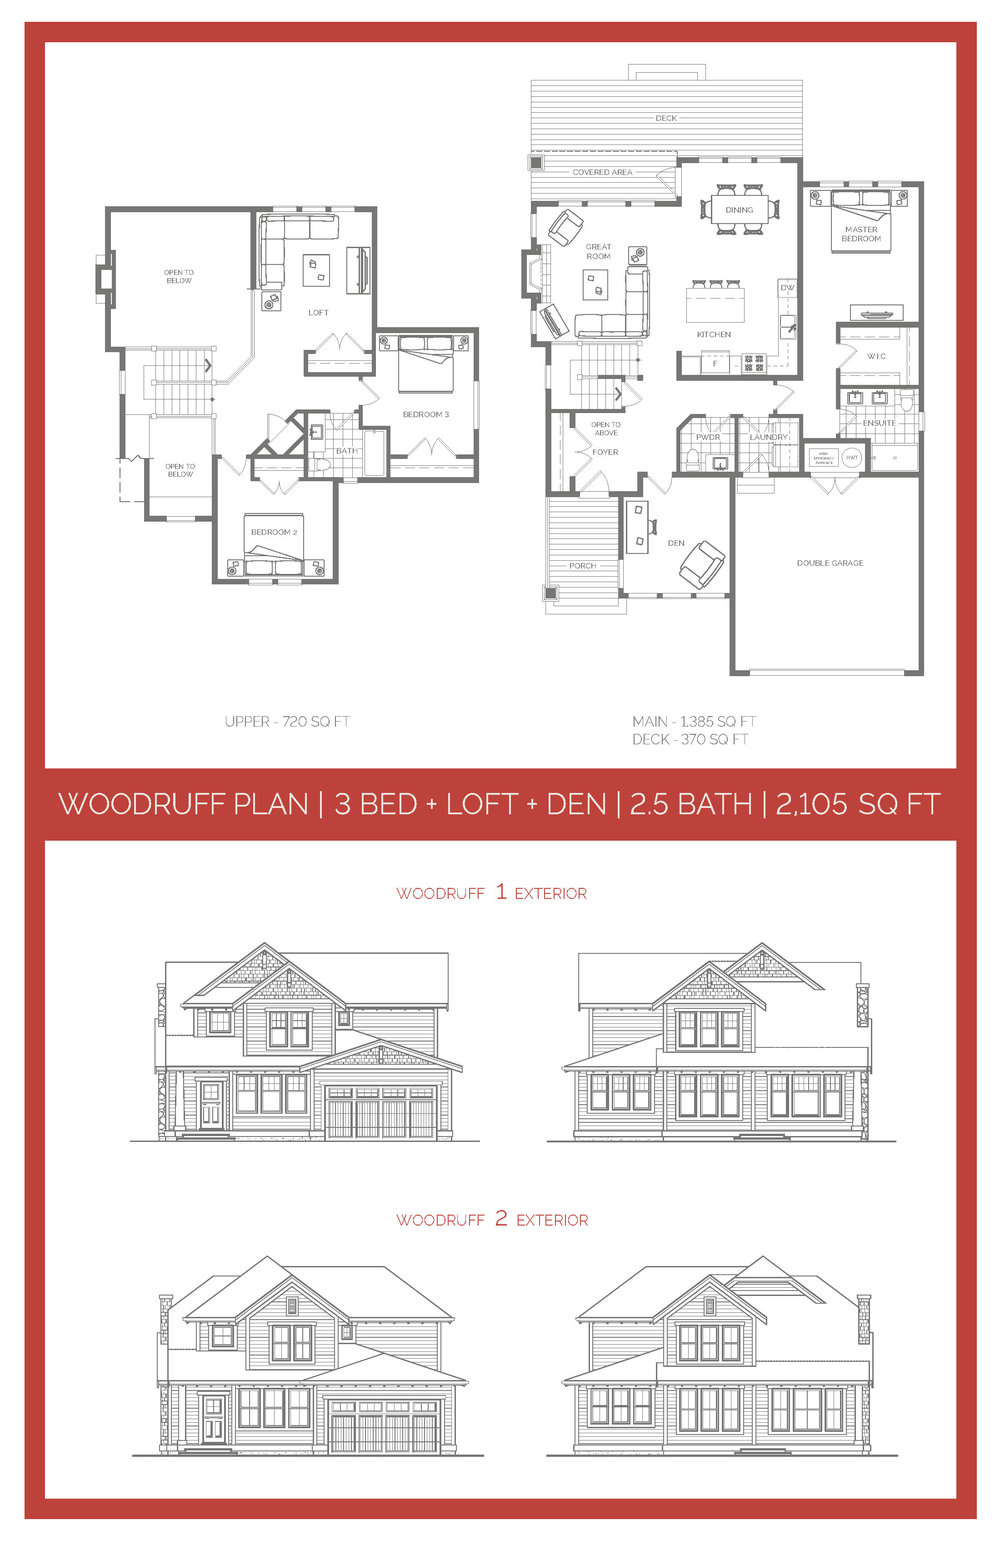 The Woodruff Floor Plan